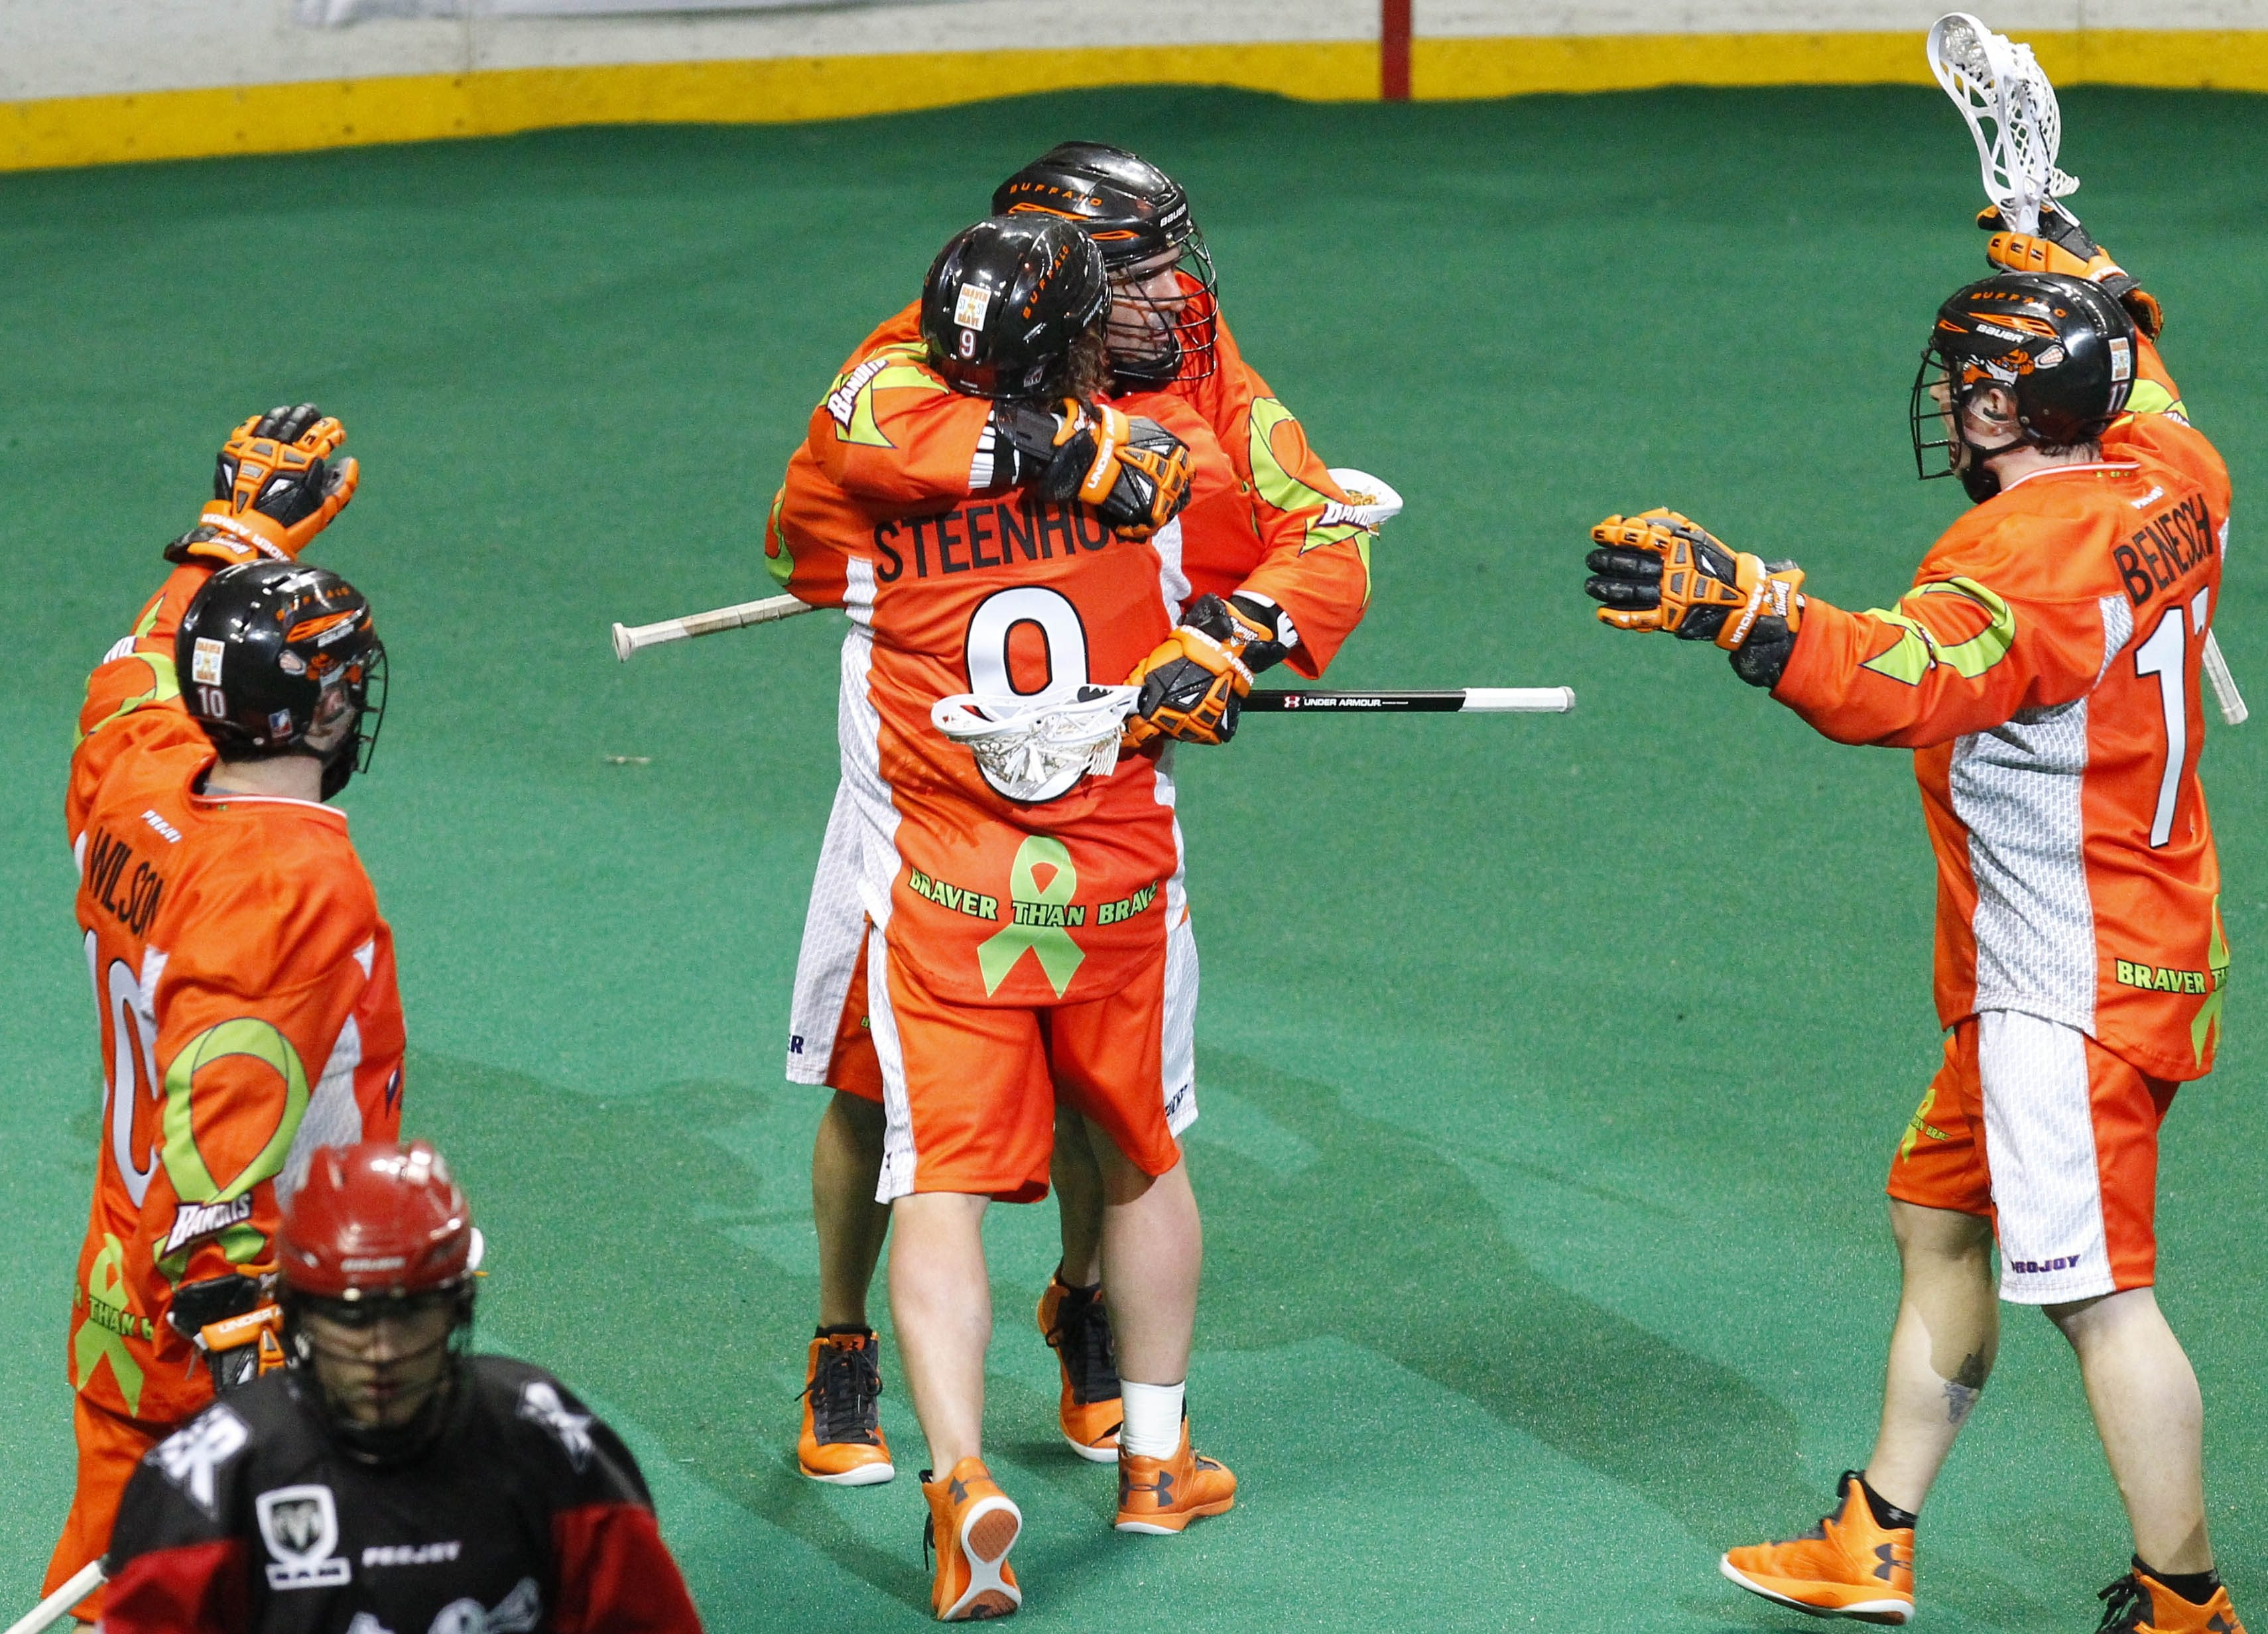 The Bandits' John Tavares gets a hug from Mark Steenhuis during the celebration after Tavares scored his 800th career goal, most in NLL history.